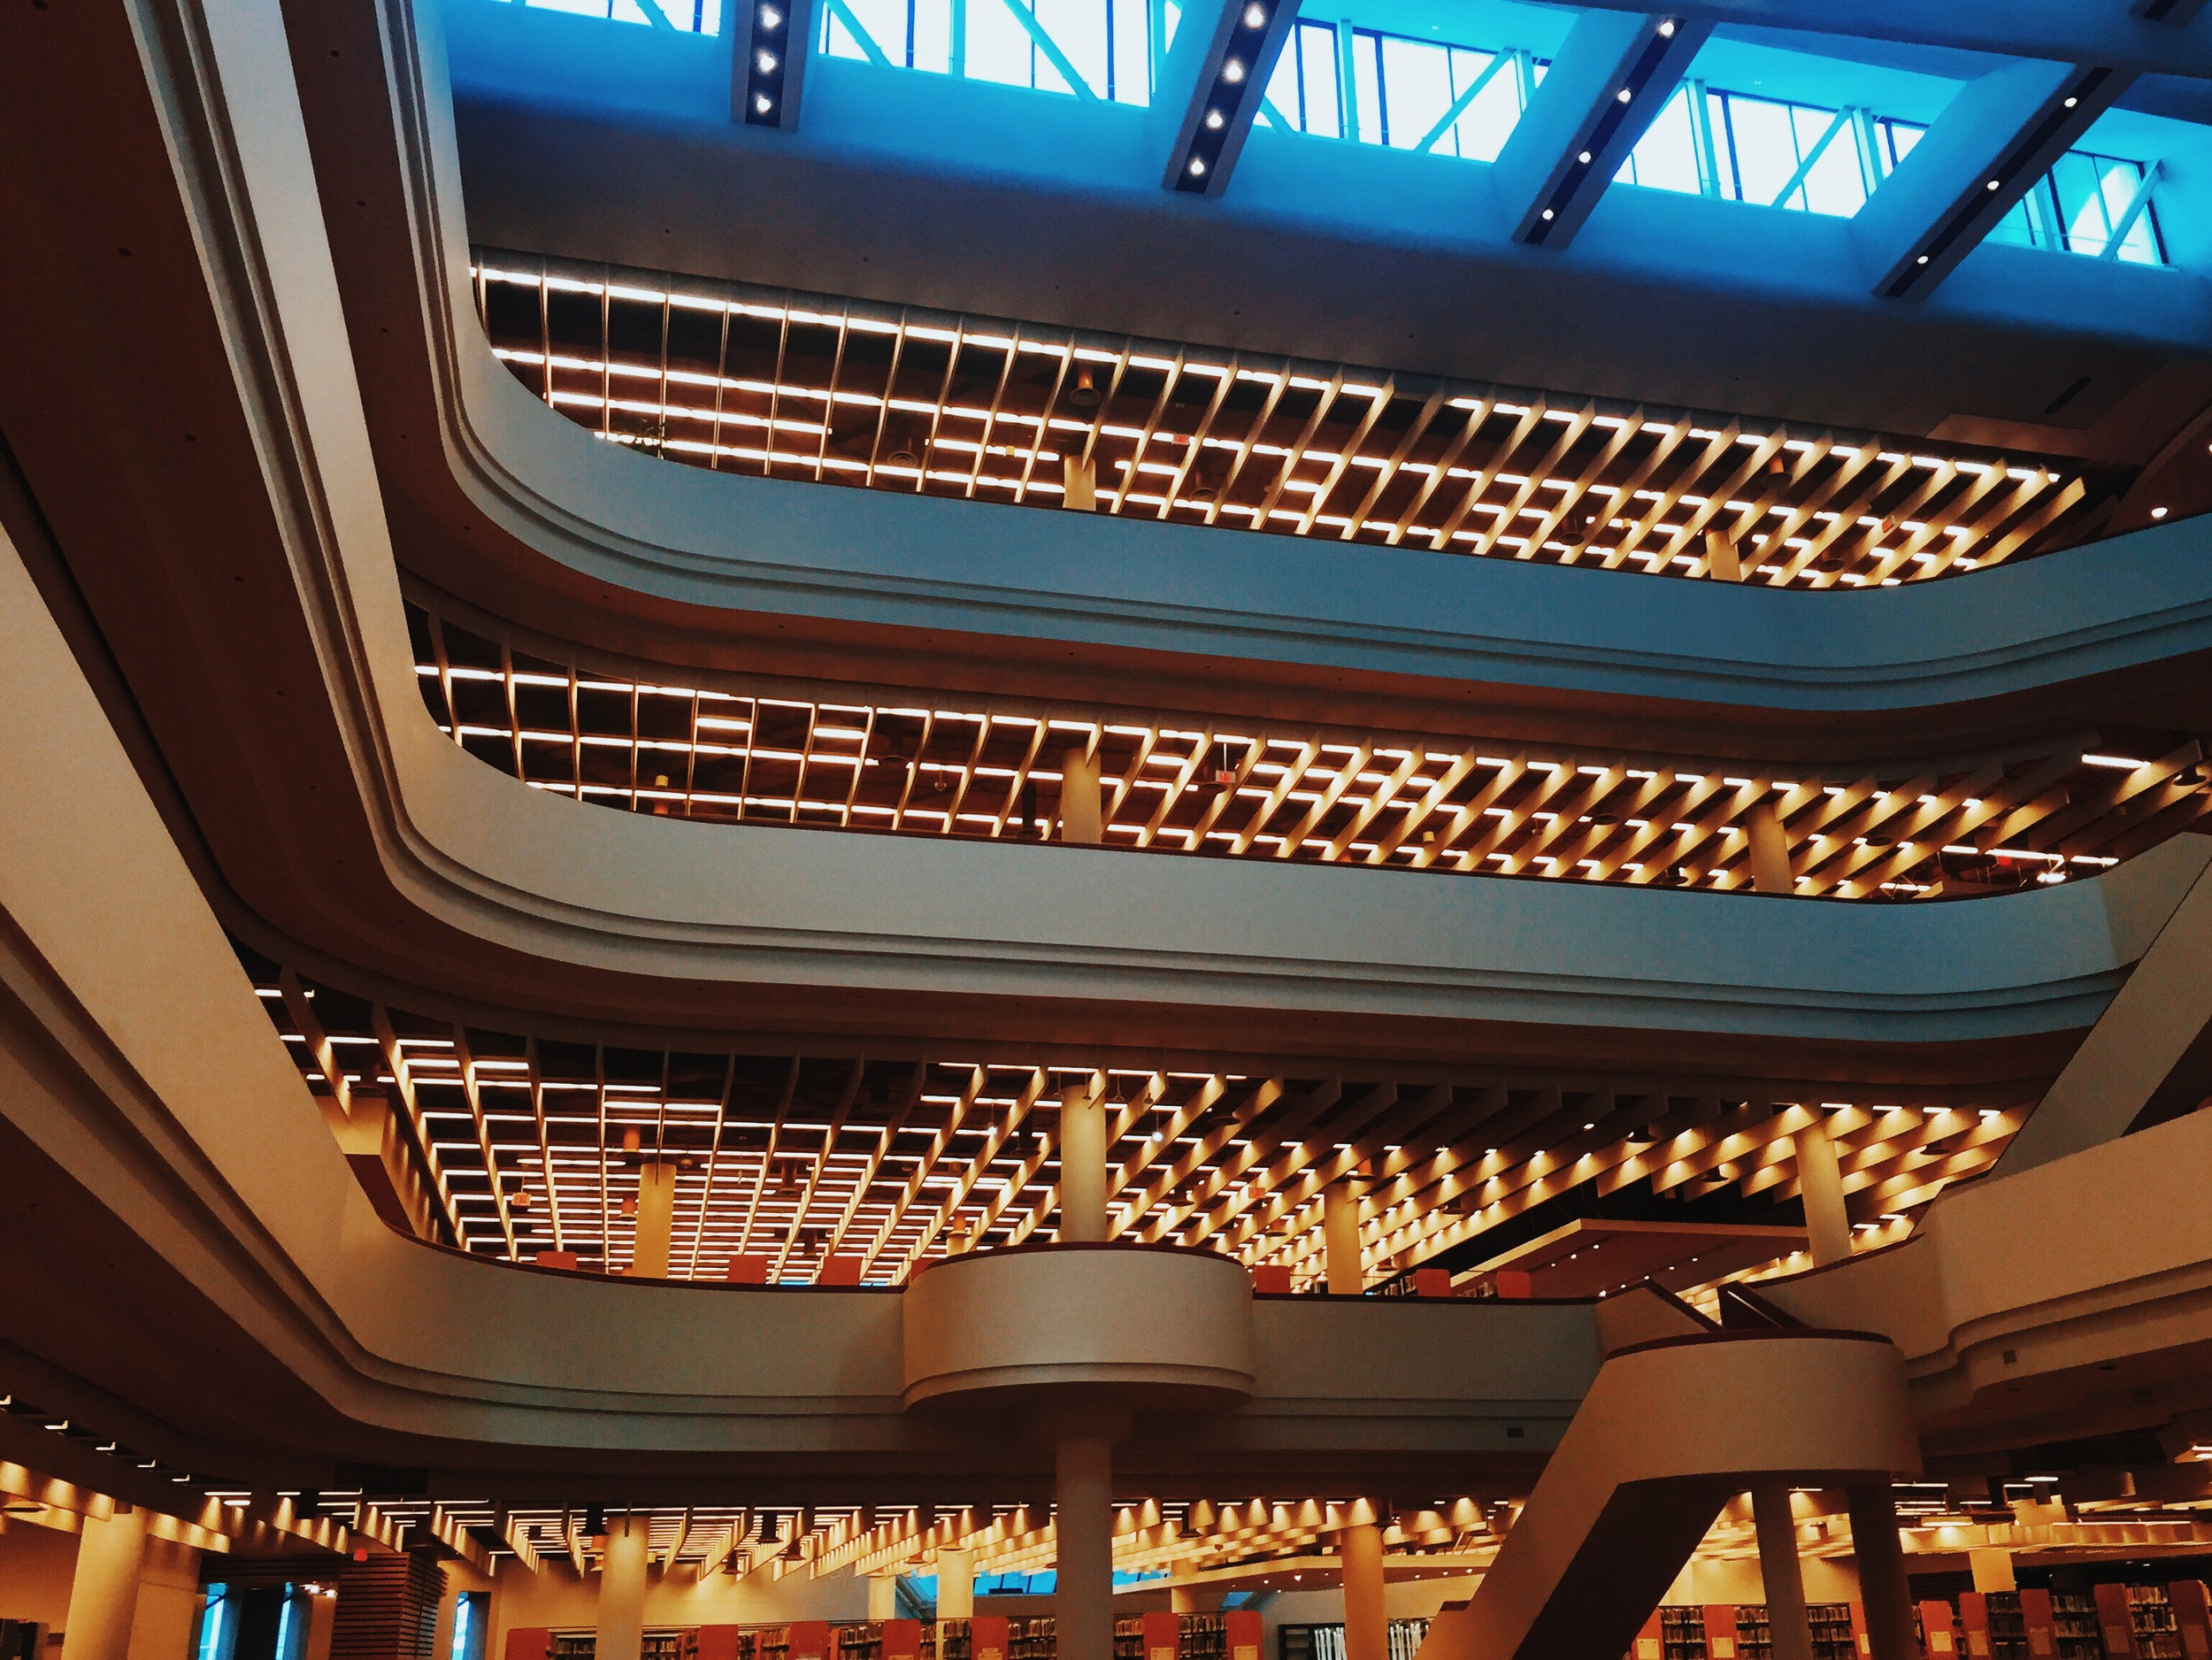 The Toronto Reference Library.